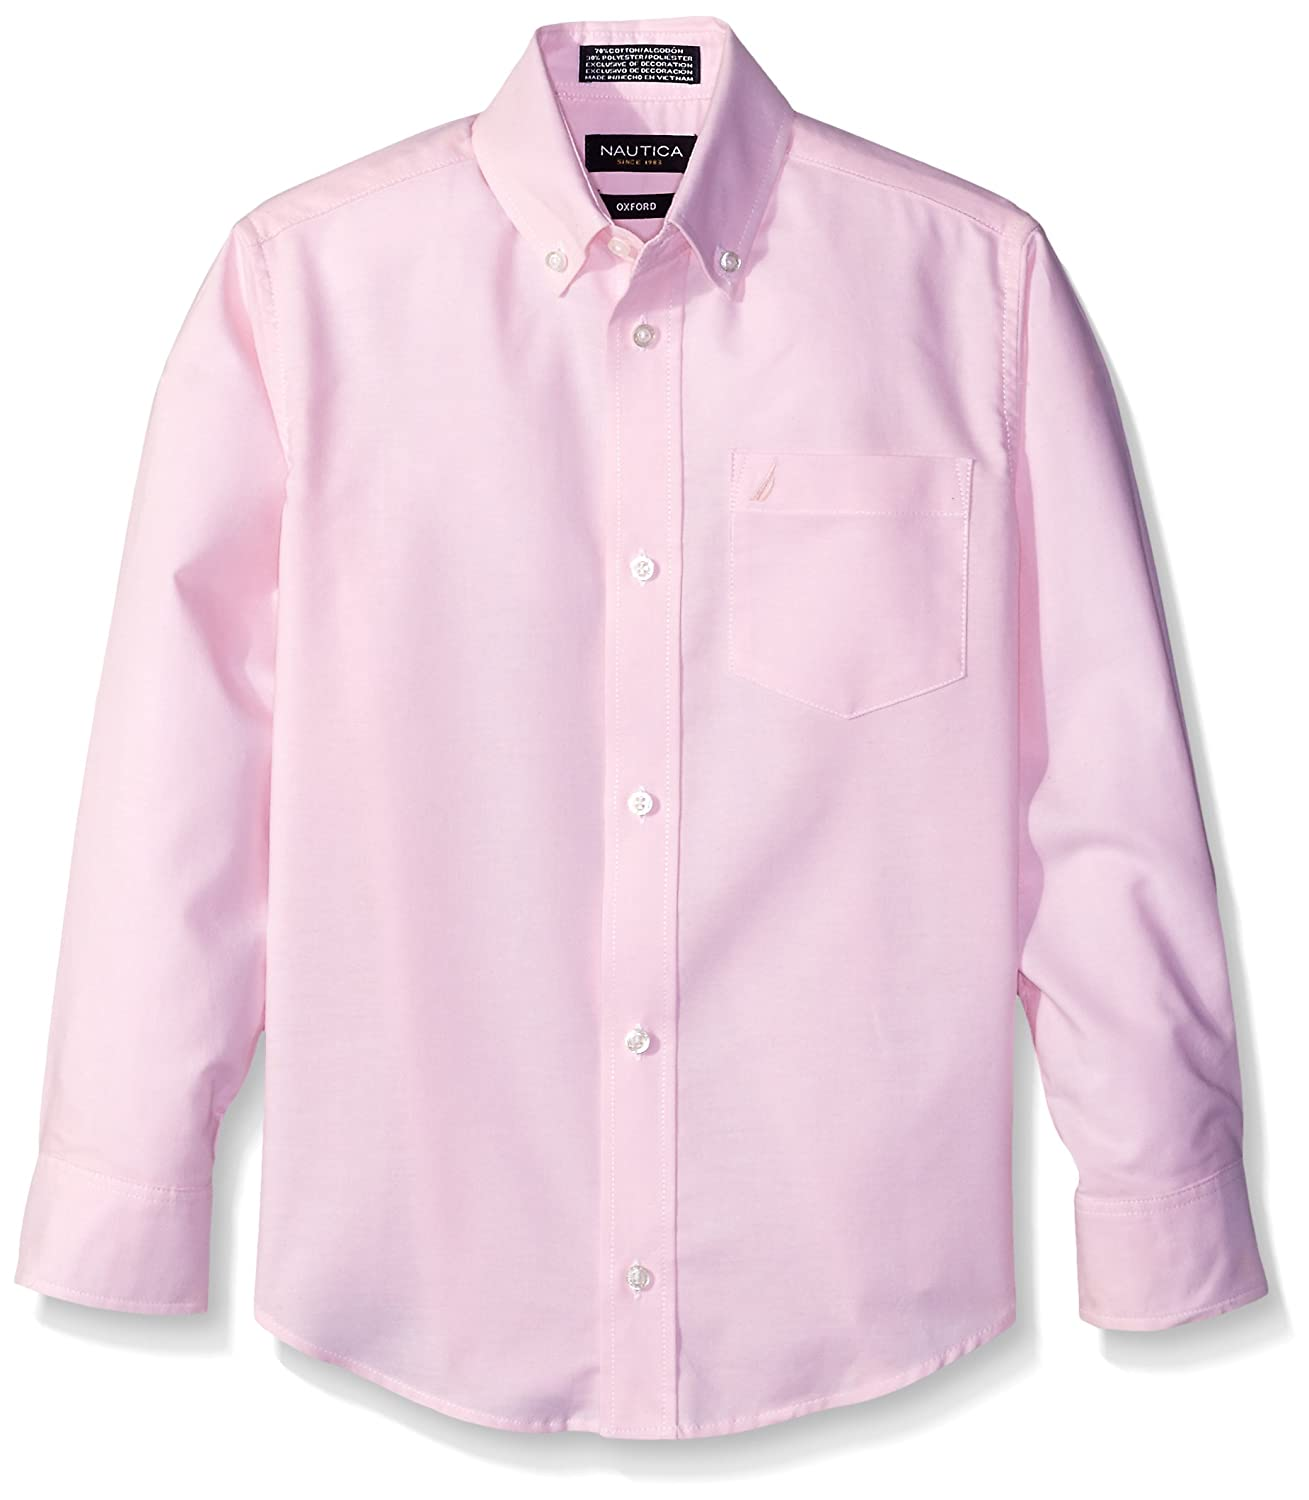 Nautica Boys' Long-Sleeve Oxford Shirt N871058